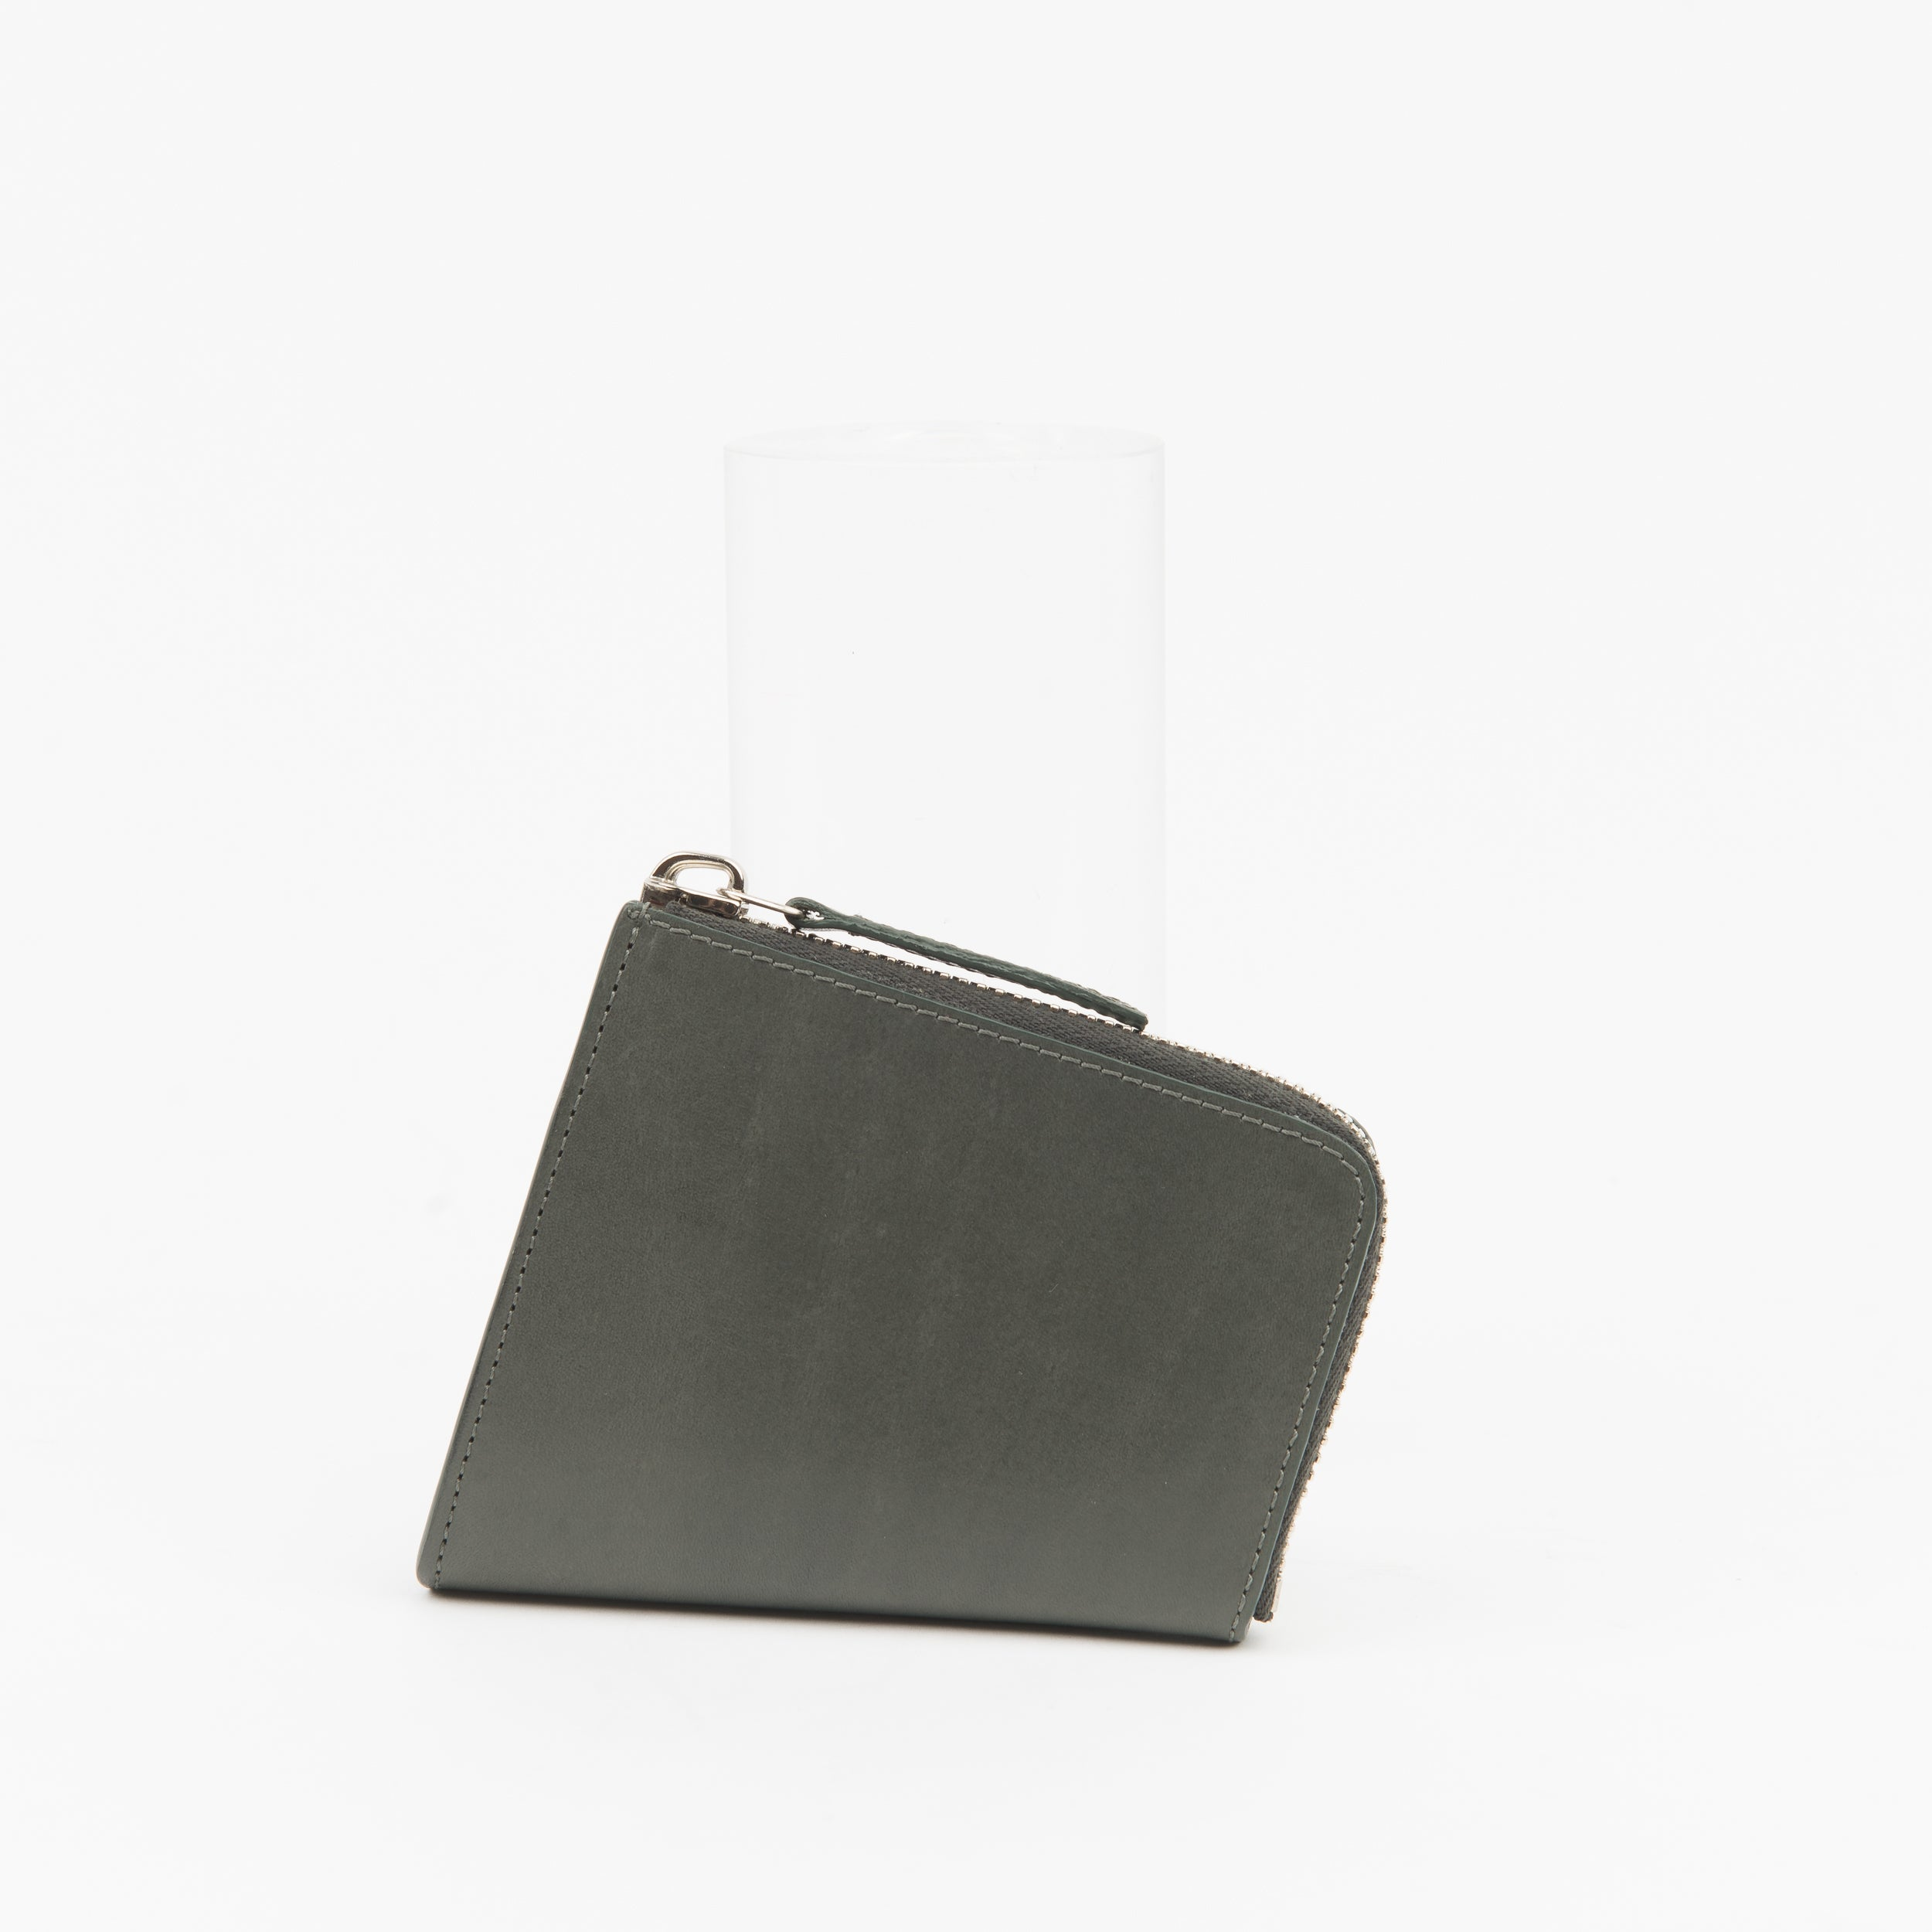 FORM-MATTER SIDE-FOLD ANGLE ZIP WALLET